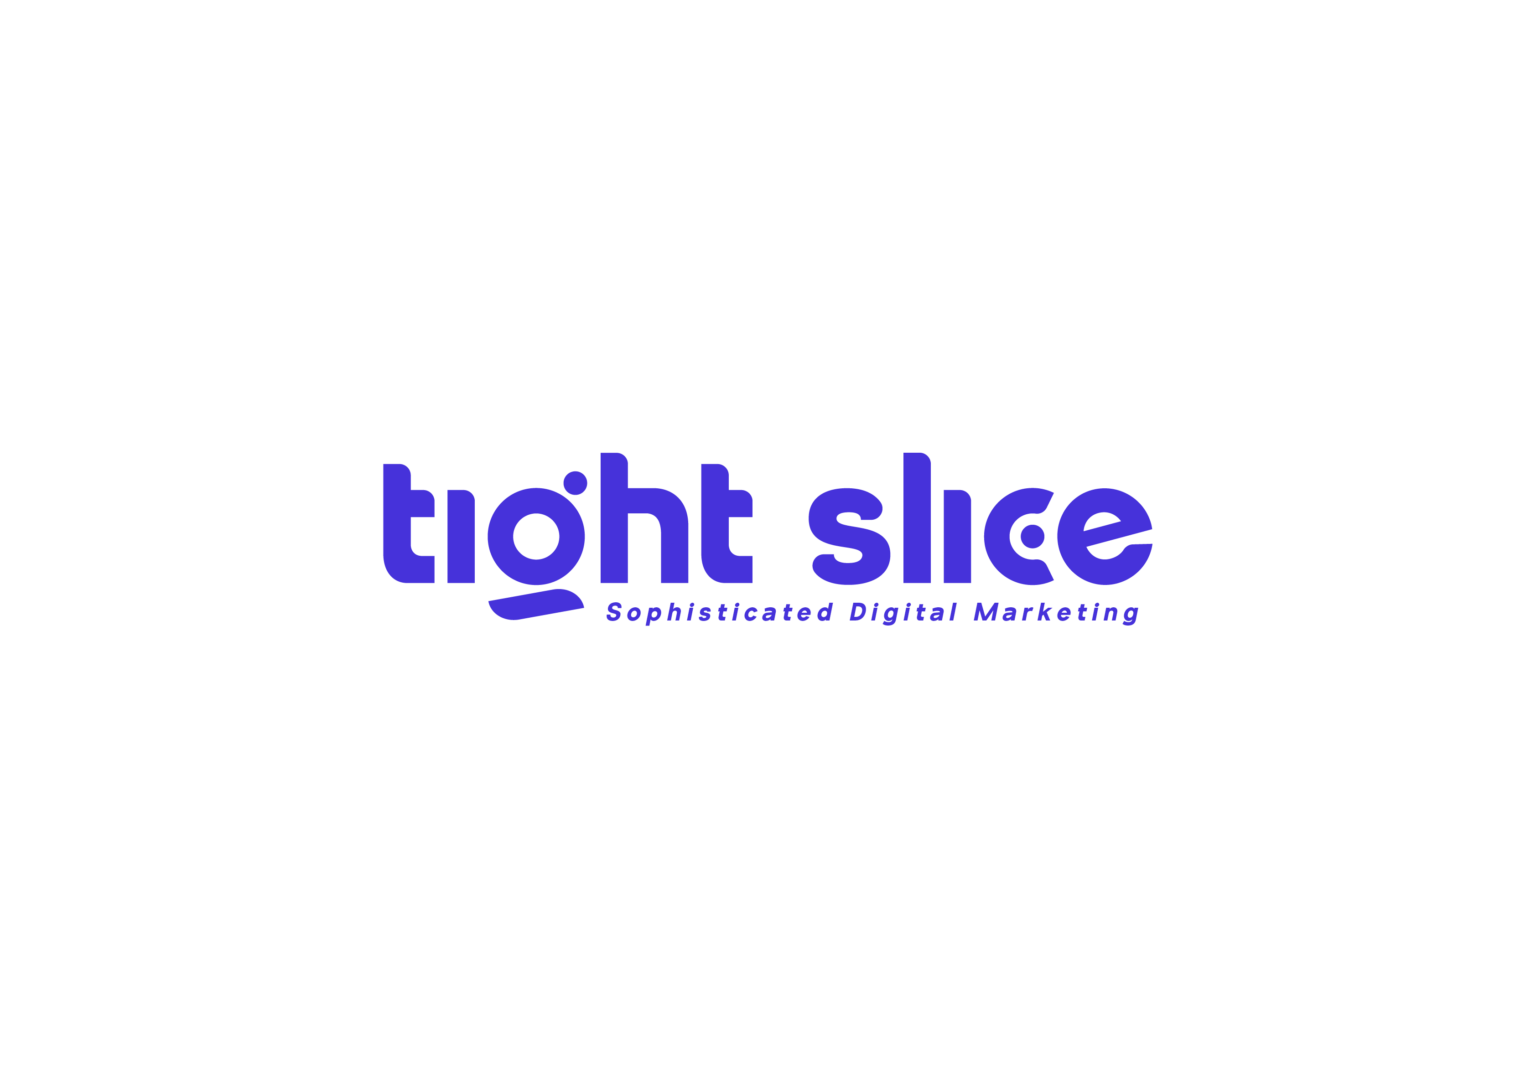 Tight Slice SEO: The Keys To Local Digital Marketing